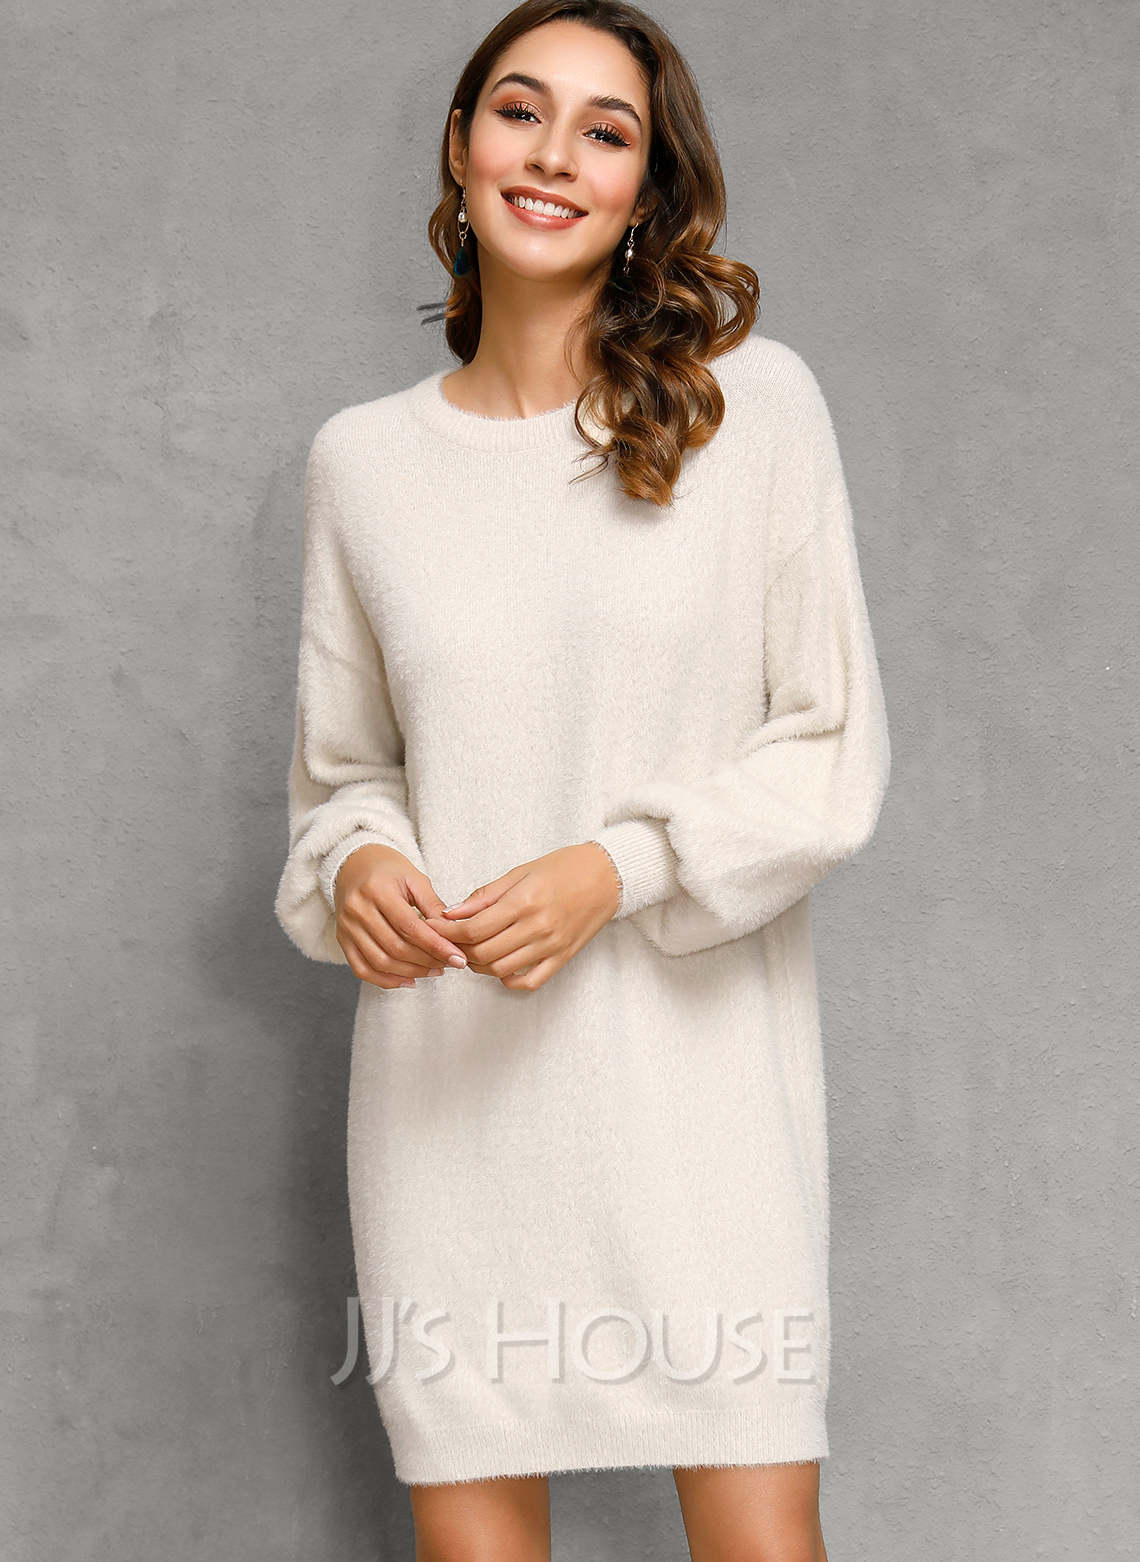 Chunky knit Solid Polyester Round Neck Pullovers Sweater Dresses Sweaters